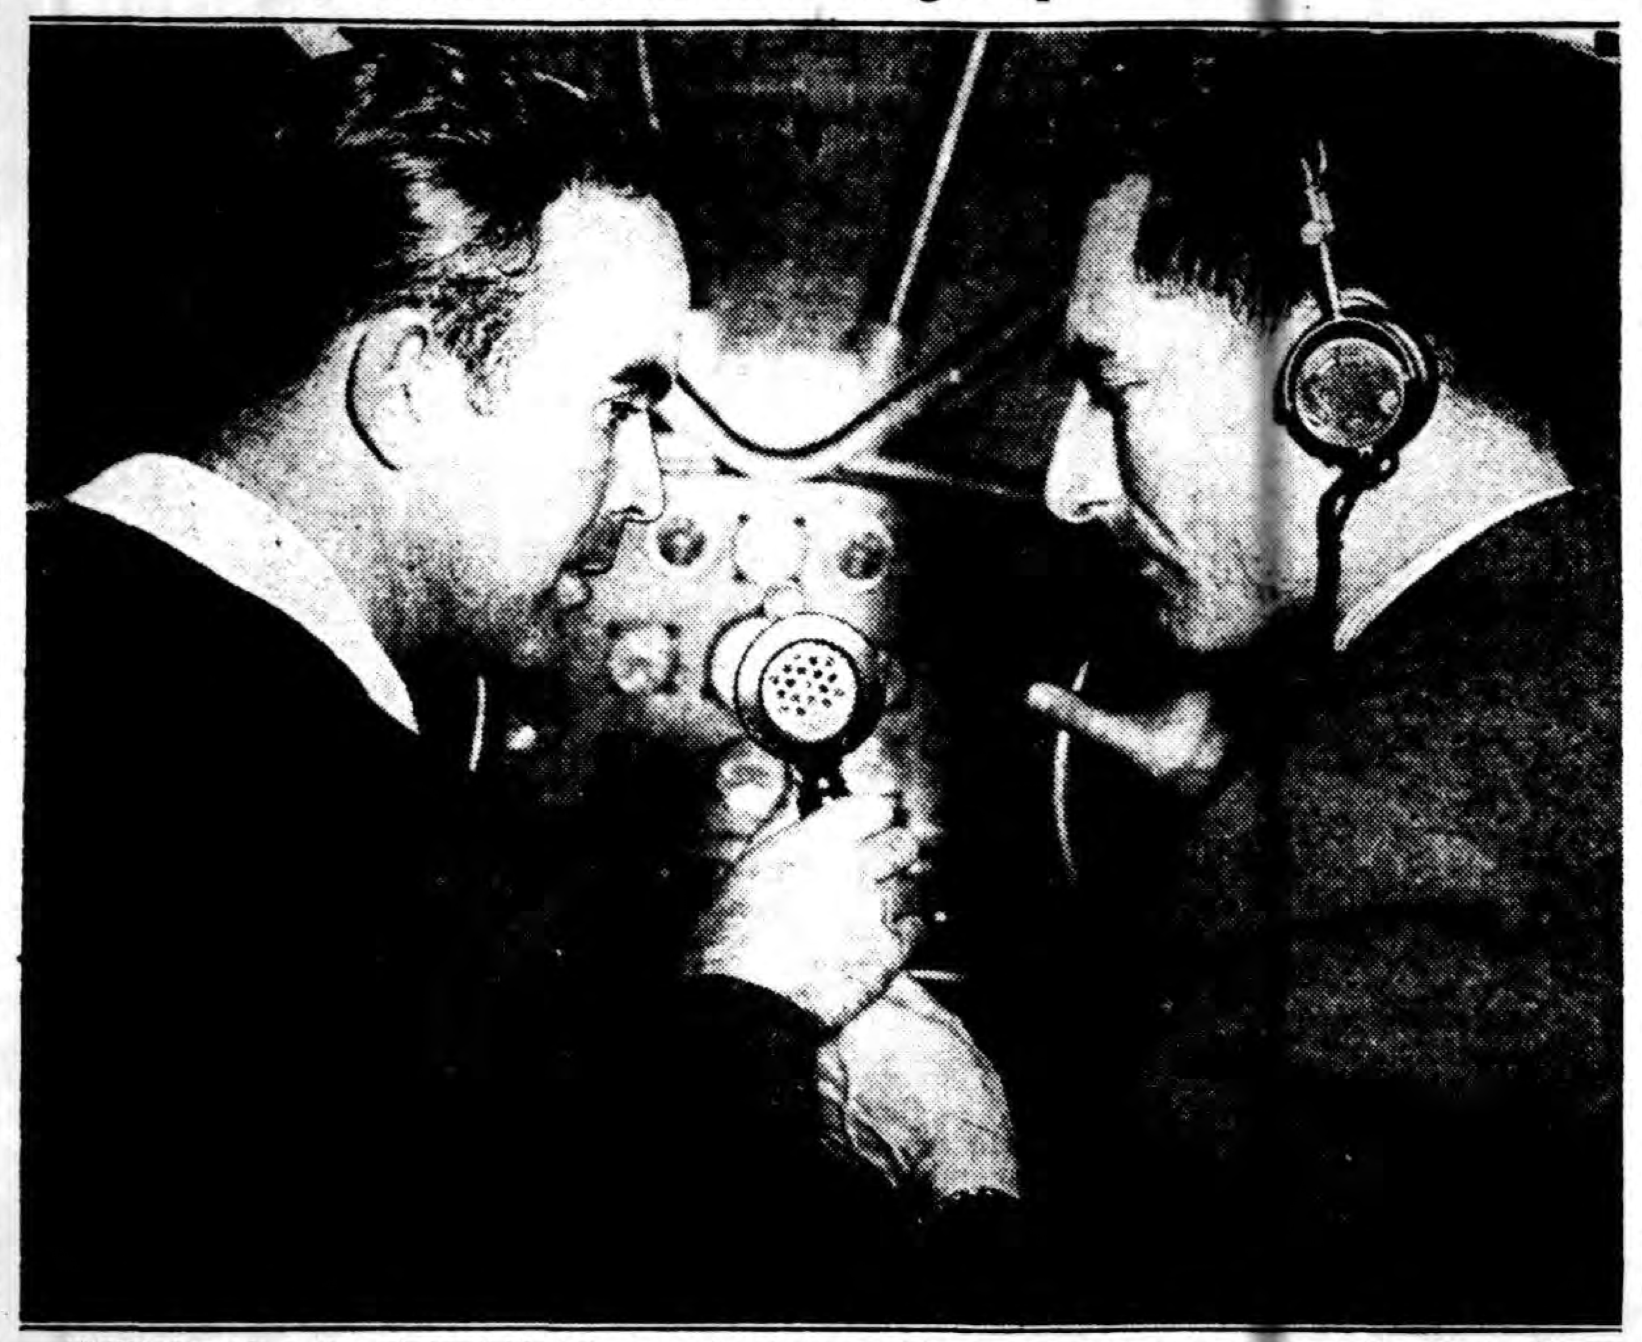 William Howell, seated at left, radios from his plane that the Hindenburg had just been spotted off the coast of the United States on its maiden flight from Europe. Photo from the August 11th, 1936 edition of the Long Island Daily Press.